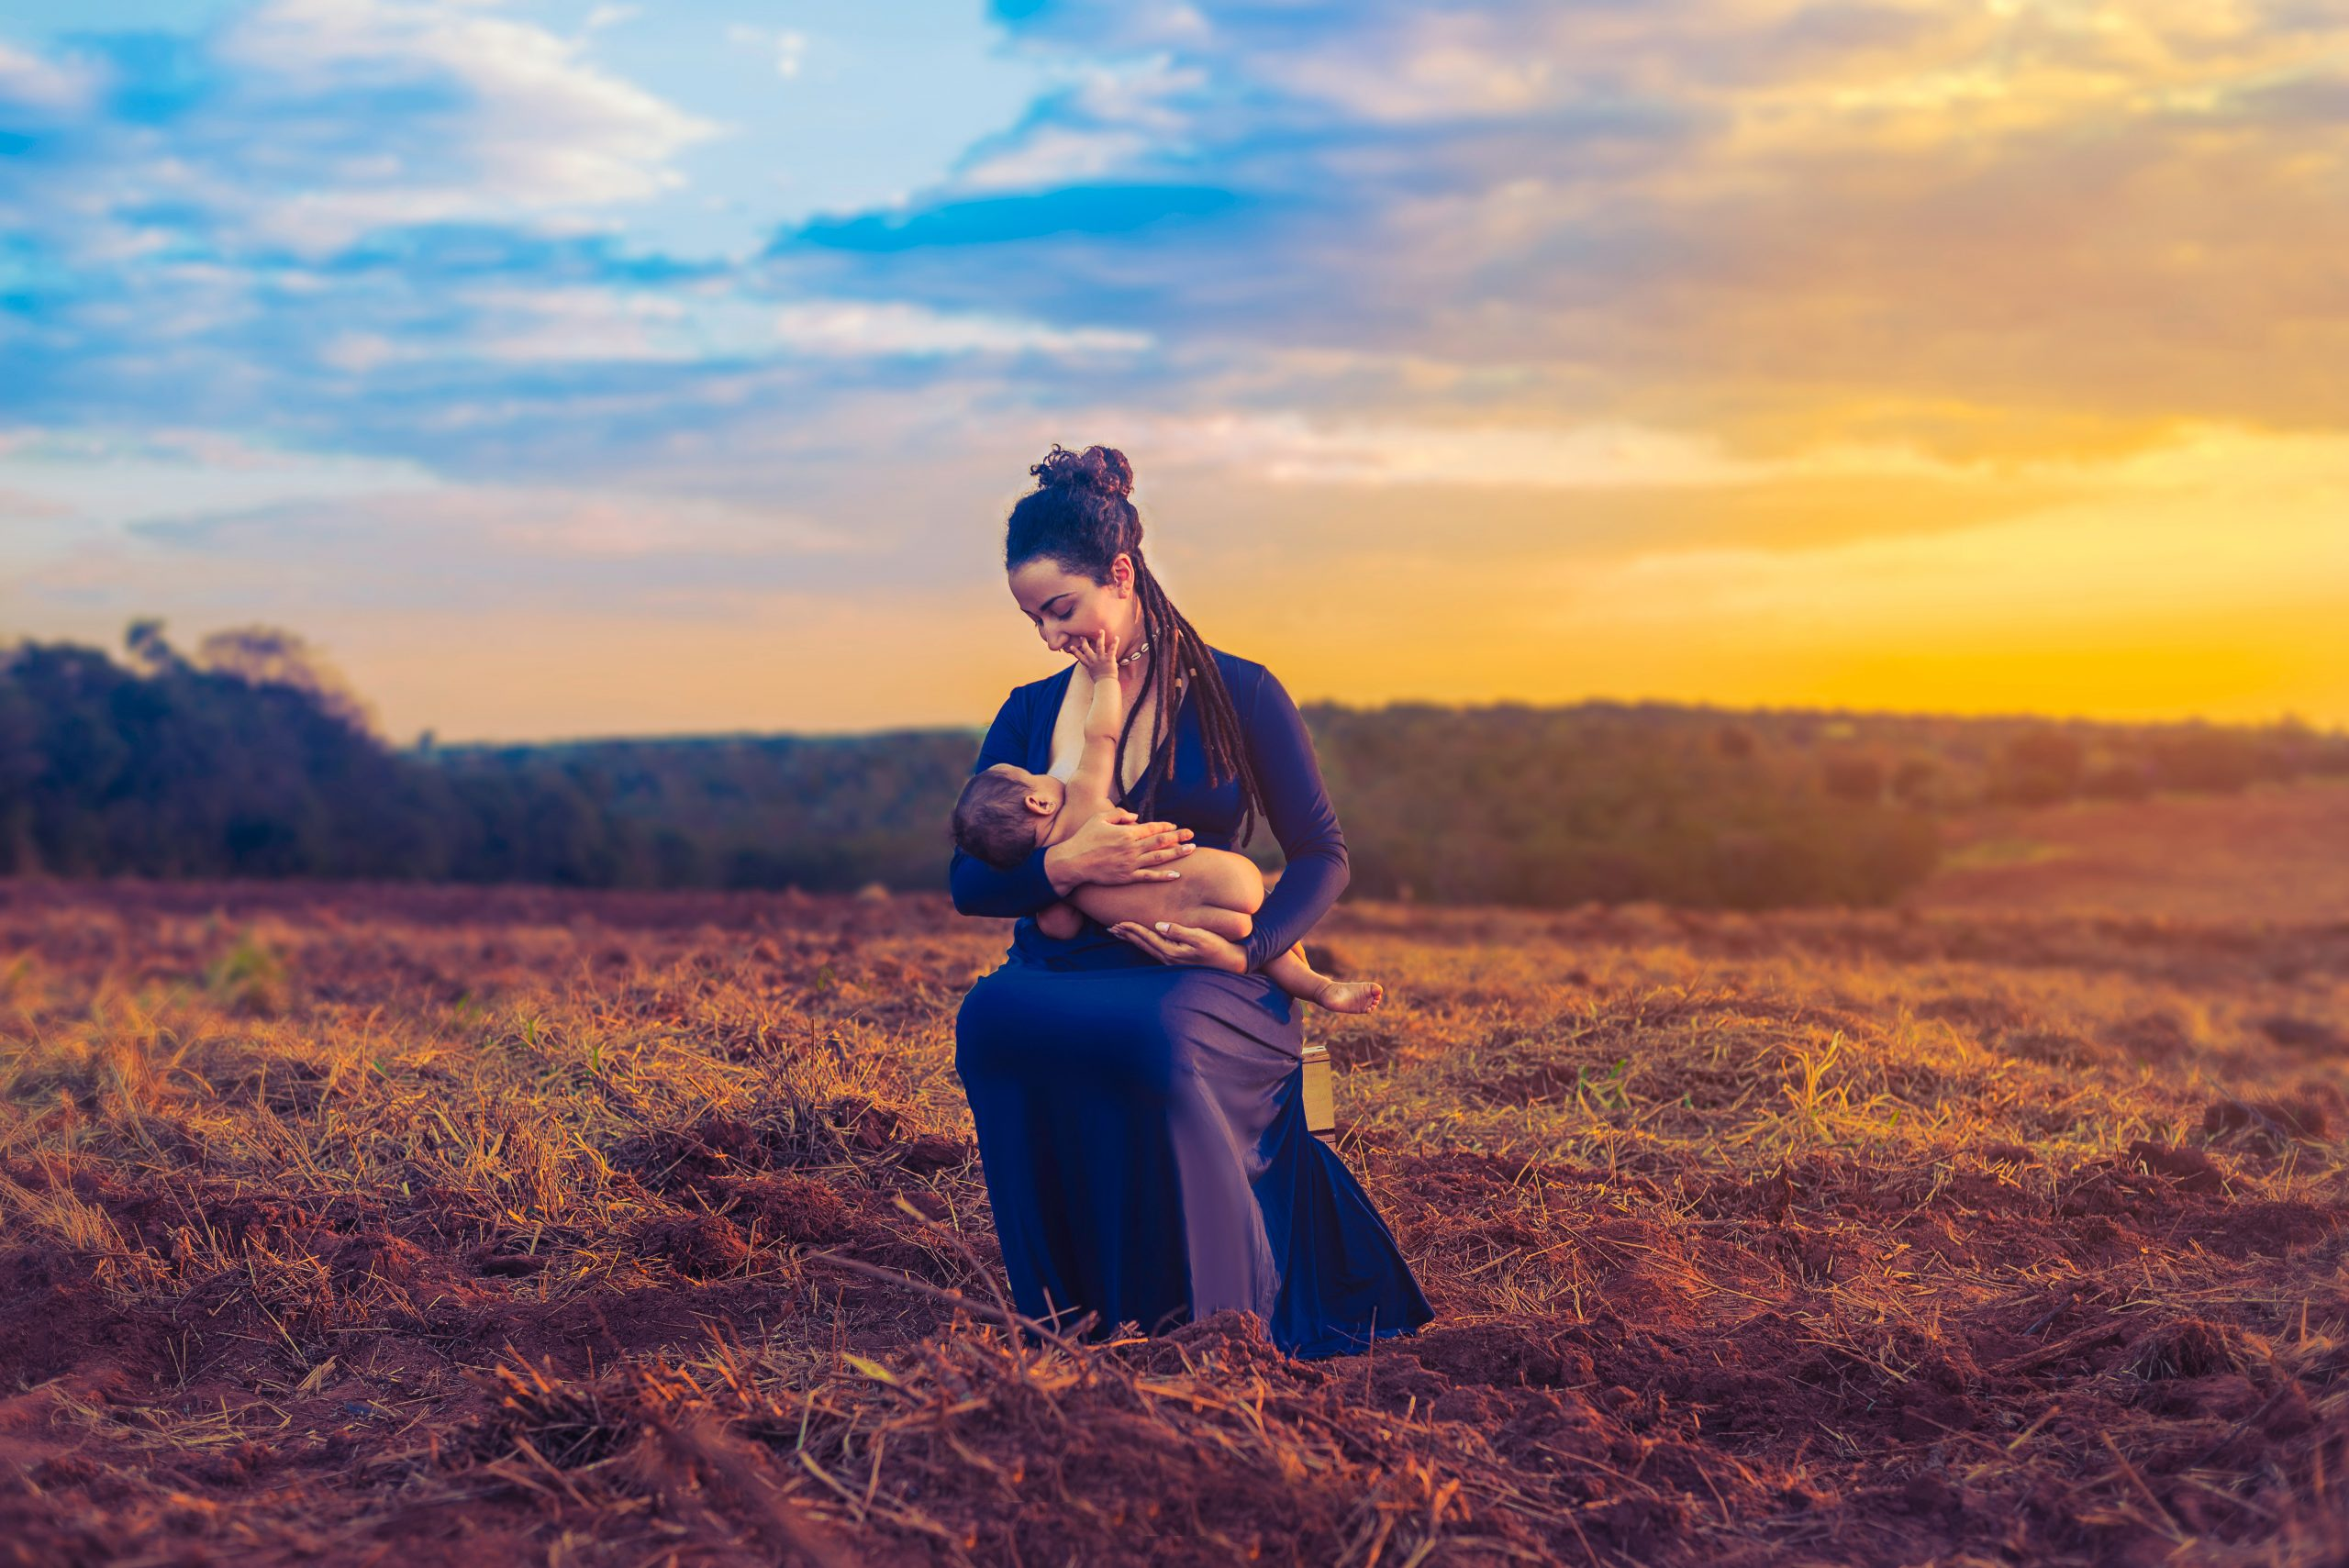 Woman breastfeeding in a field during a sunset